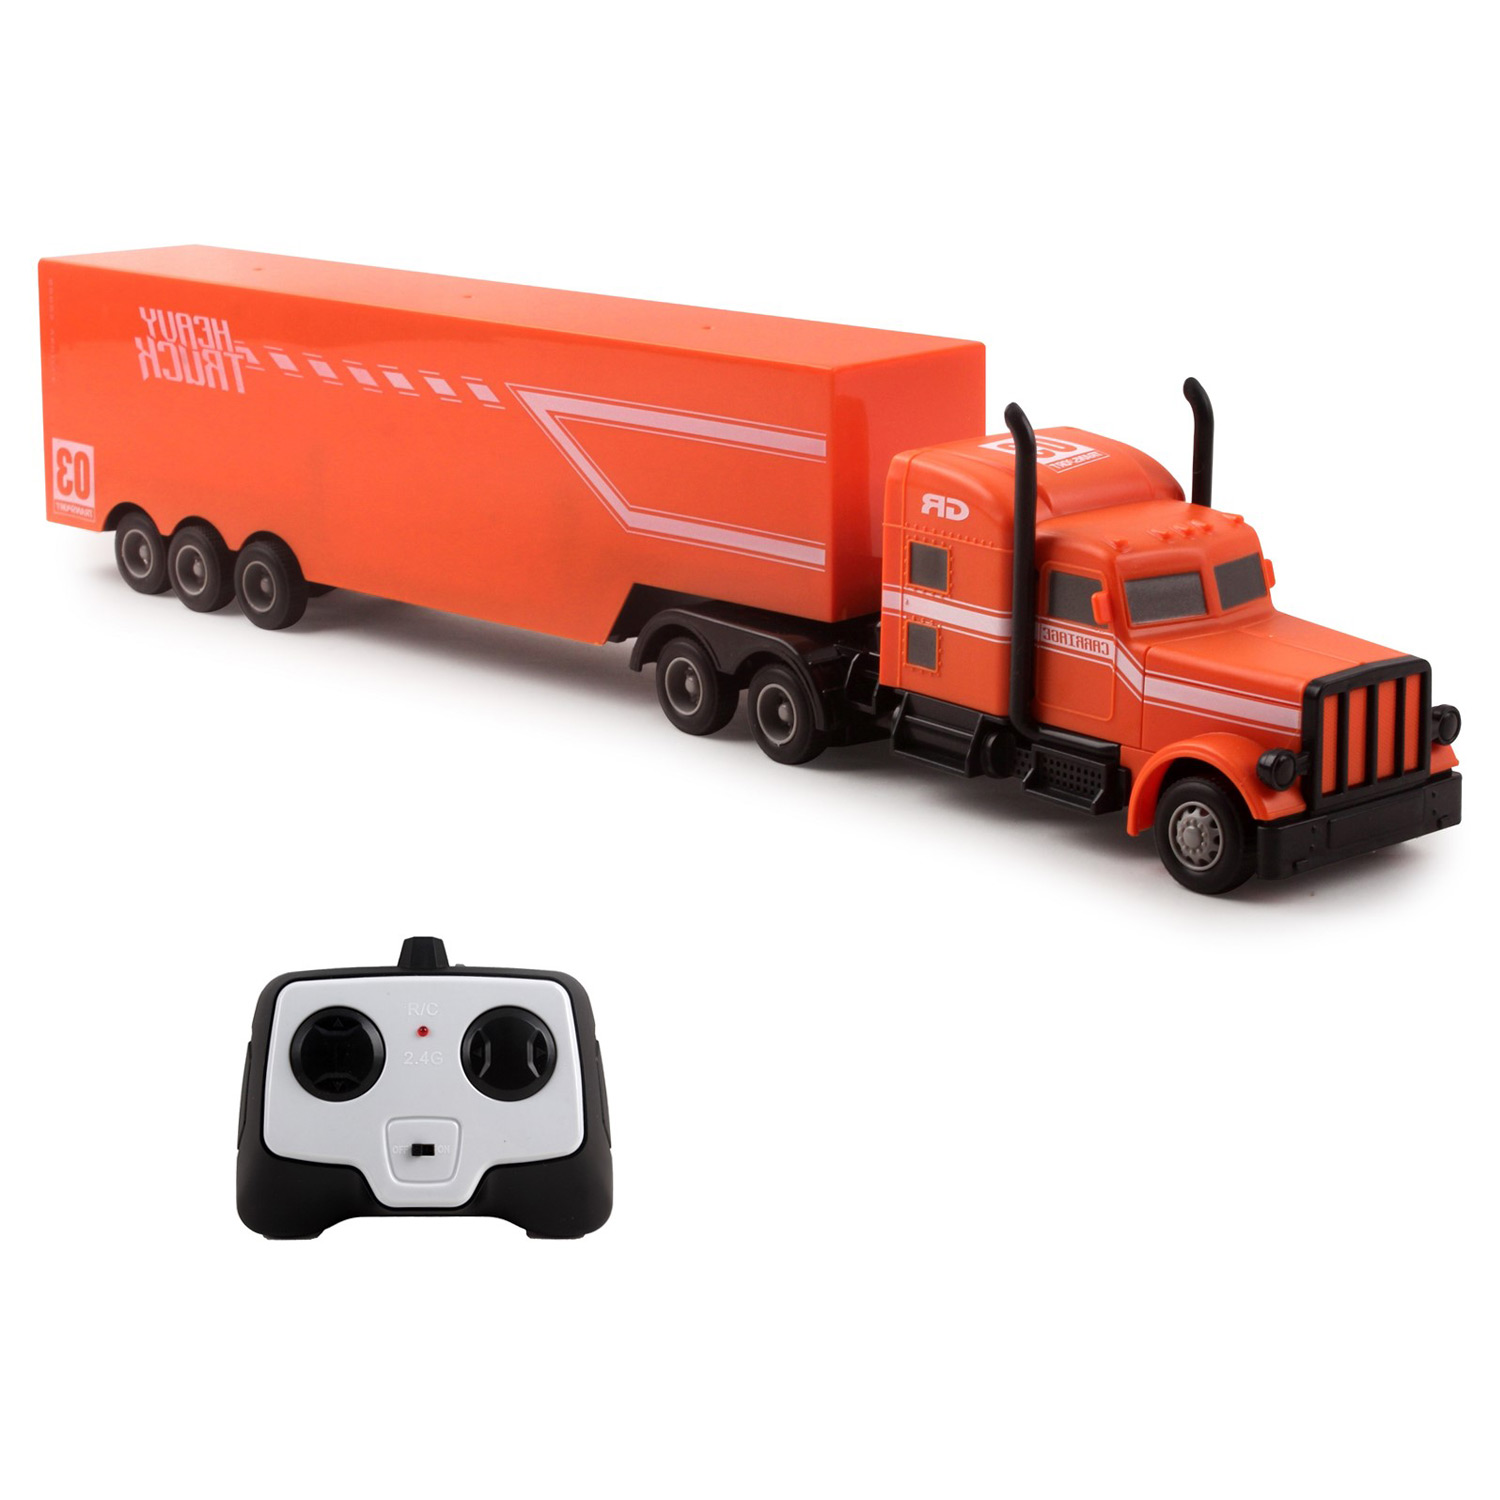 "Large RC Semi Truck Trailer 18"" 2.4Ghz Fast Speed 1:16 Scale Electric Hauler Rechargeable Remote Control Kids Big Rig Toy Carrier Van Transporter Vehicle Full Cargo Perfect Gift For Children"